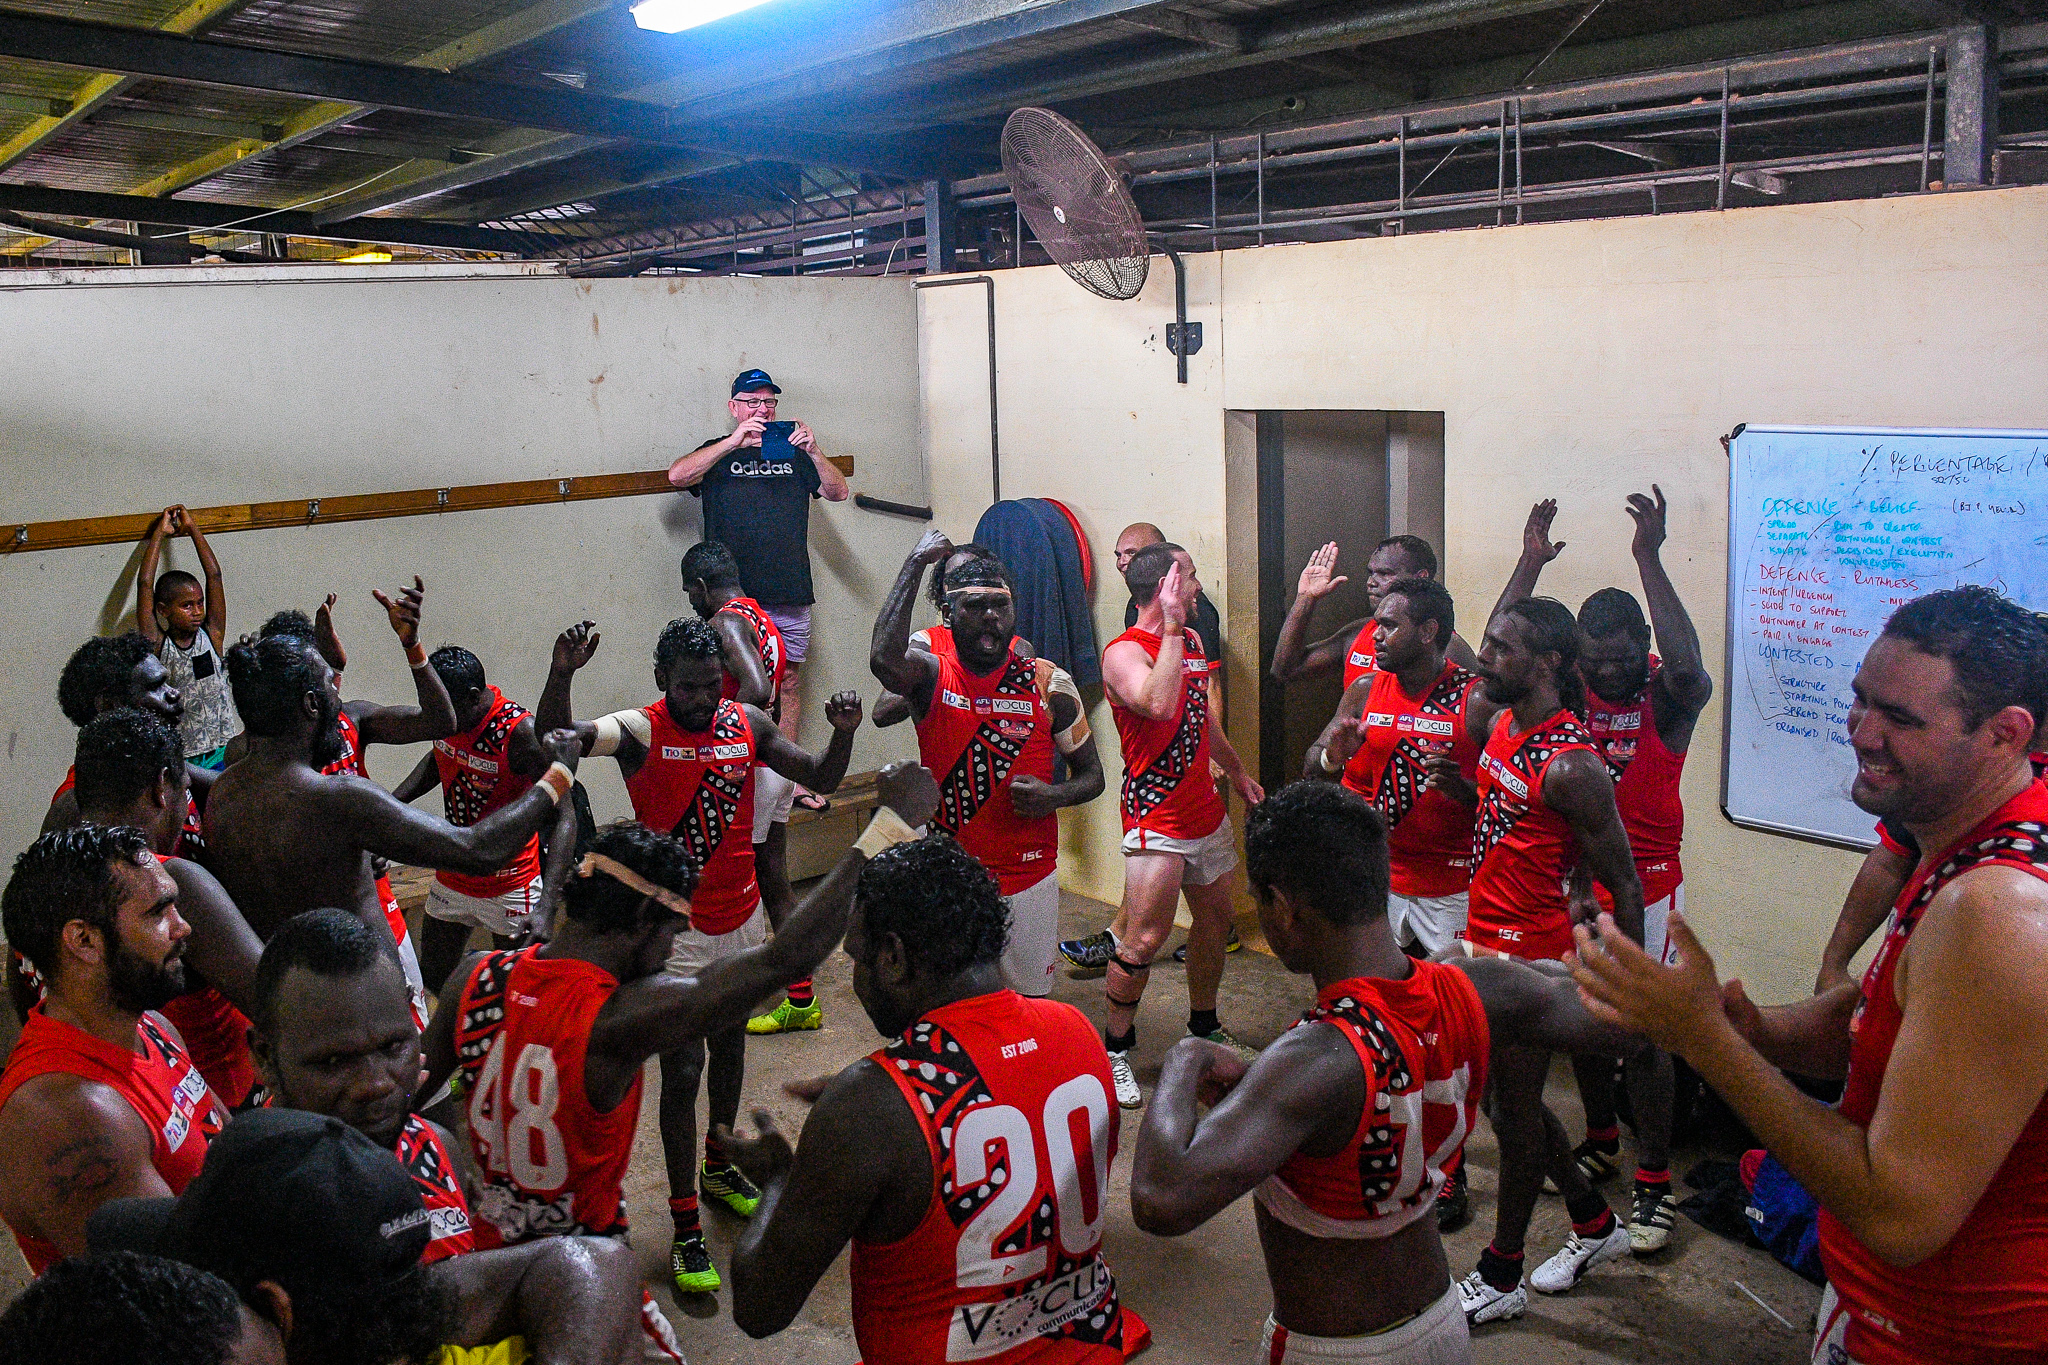 The Bombers celebrate after beating the Crocs in round 14.